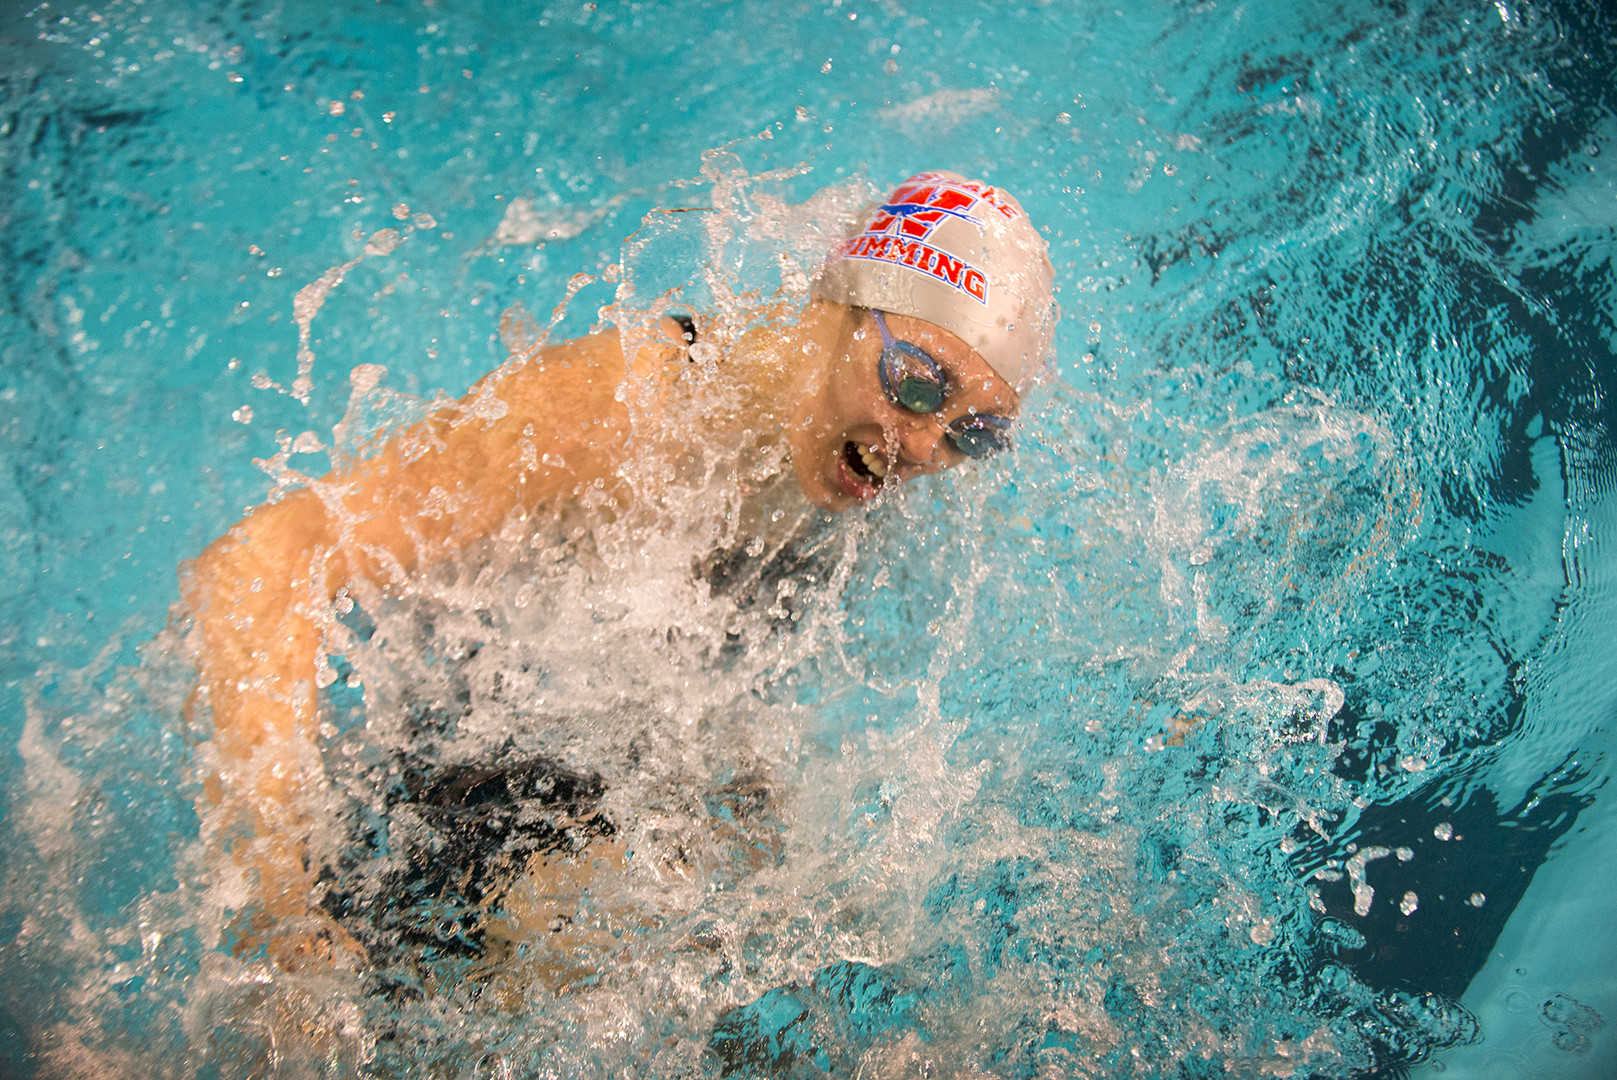 Catriona MacGregor finished a lap during the girls 100 yard breast stroke meet during the UIL Swimming and Diving State Championships at the Lee & Joe Jamail Texas Swimming Center Saturday, February 22, 2014. AUSTIN HUMPHREYS/ AMERICAN-STATESMAN